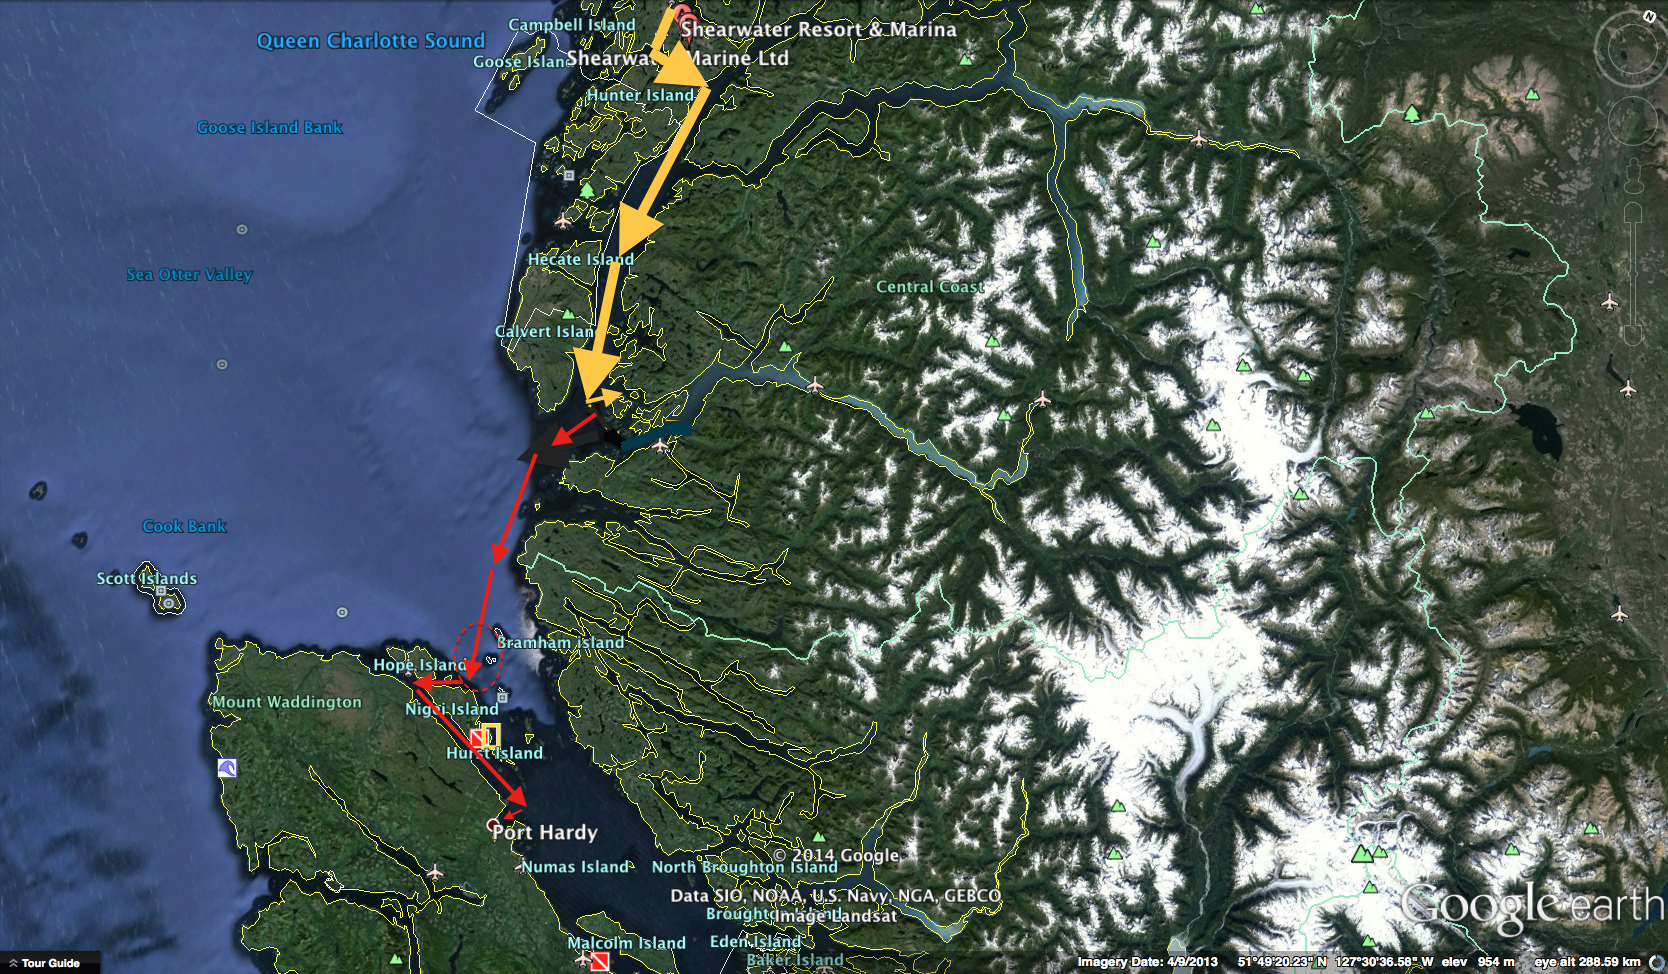 shearwater to Port Hardy